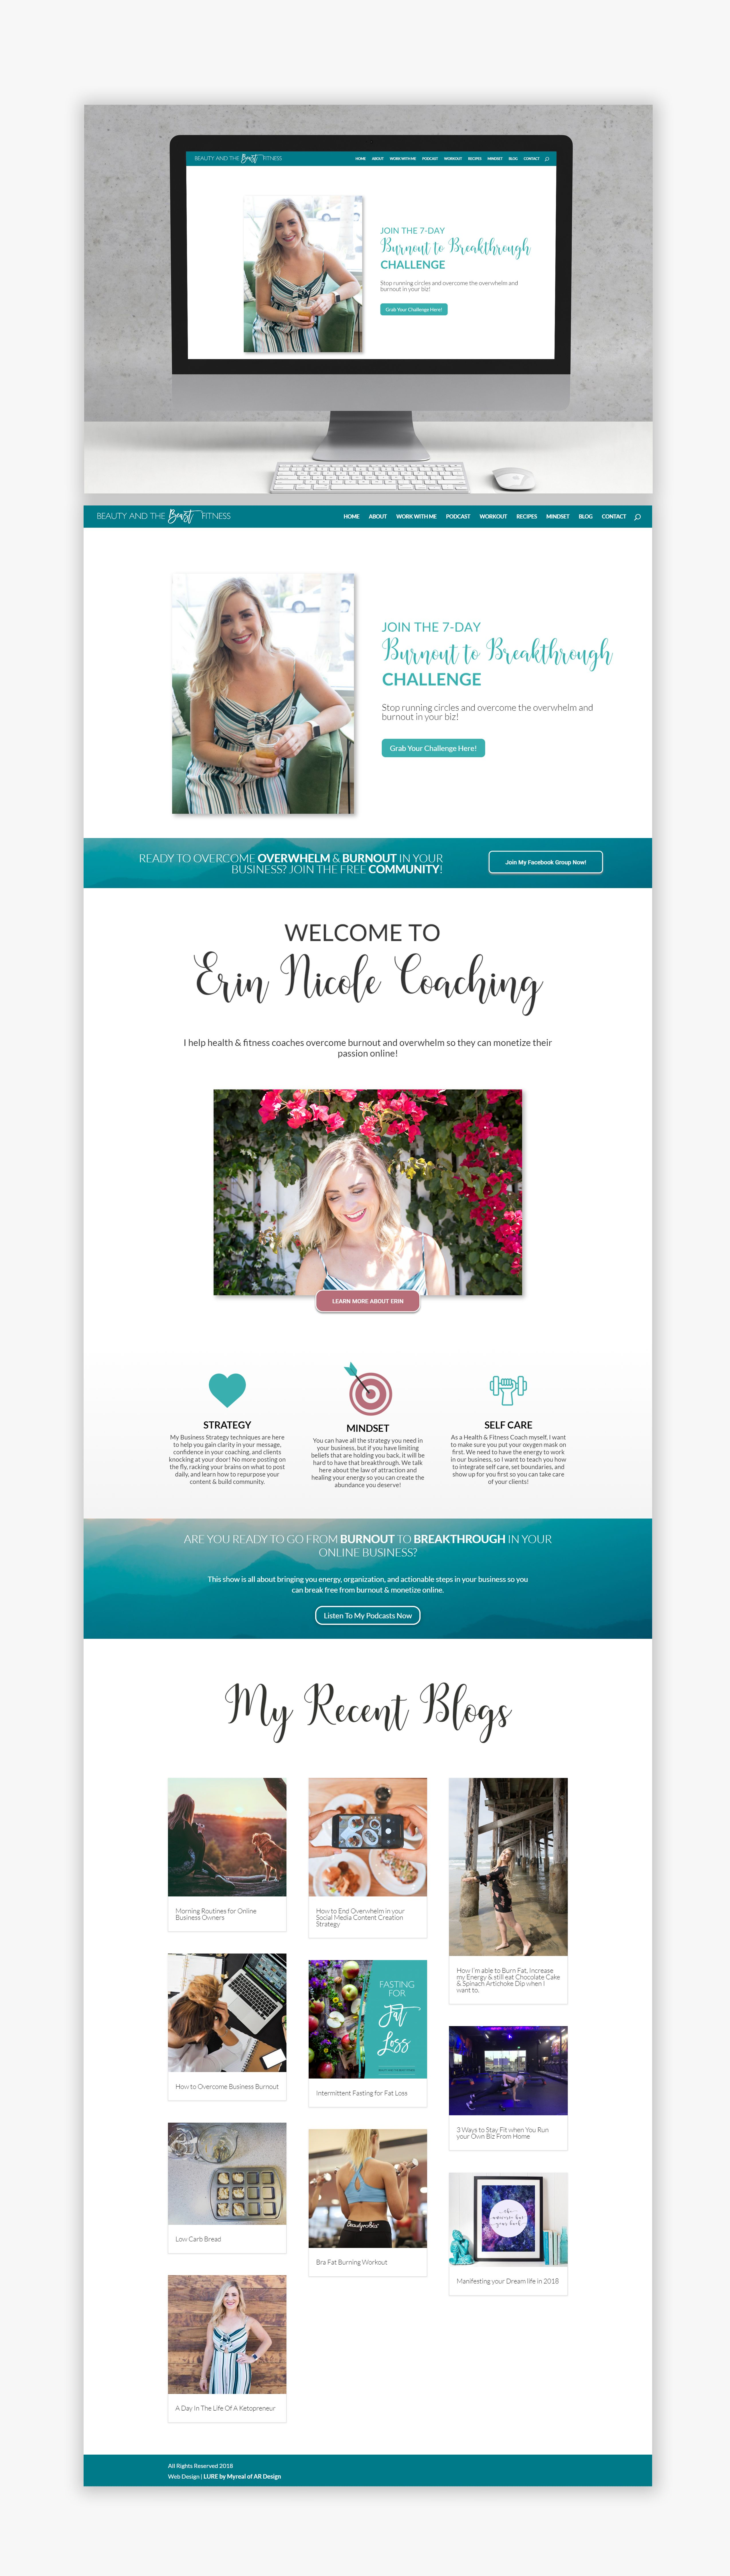 Beautiful Inexpensive Website Design Layout And Transformation For Small Business Owners Coaches An Website Design Layout Web Template Design Website Design